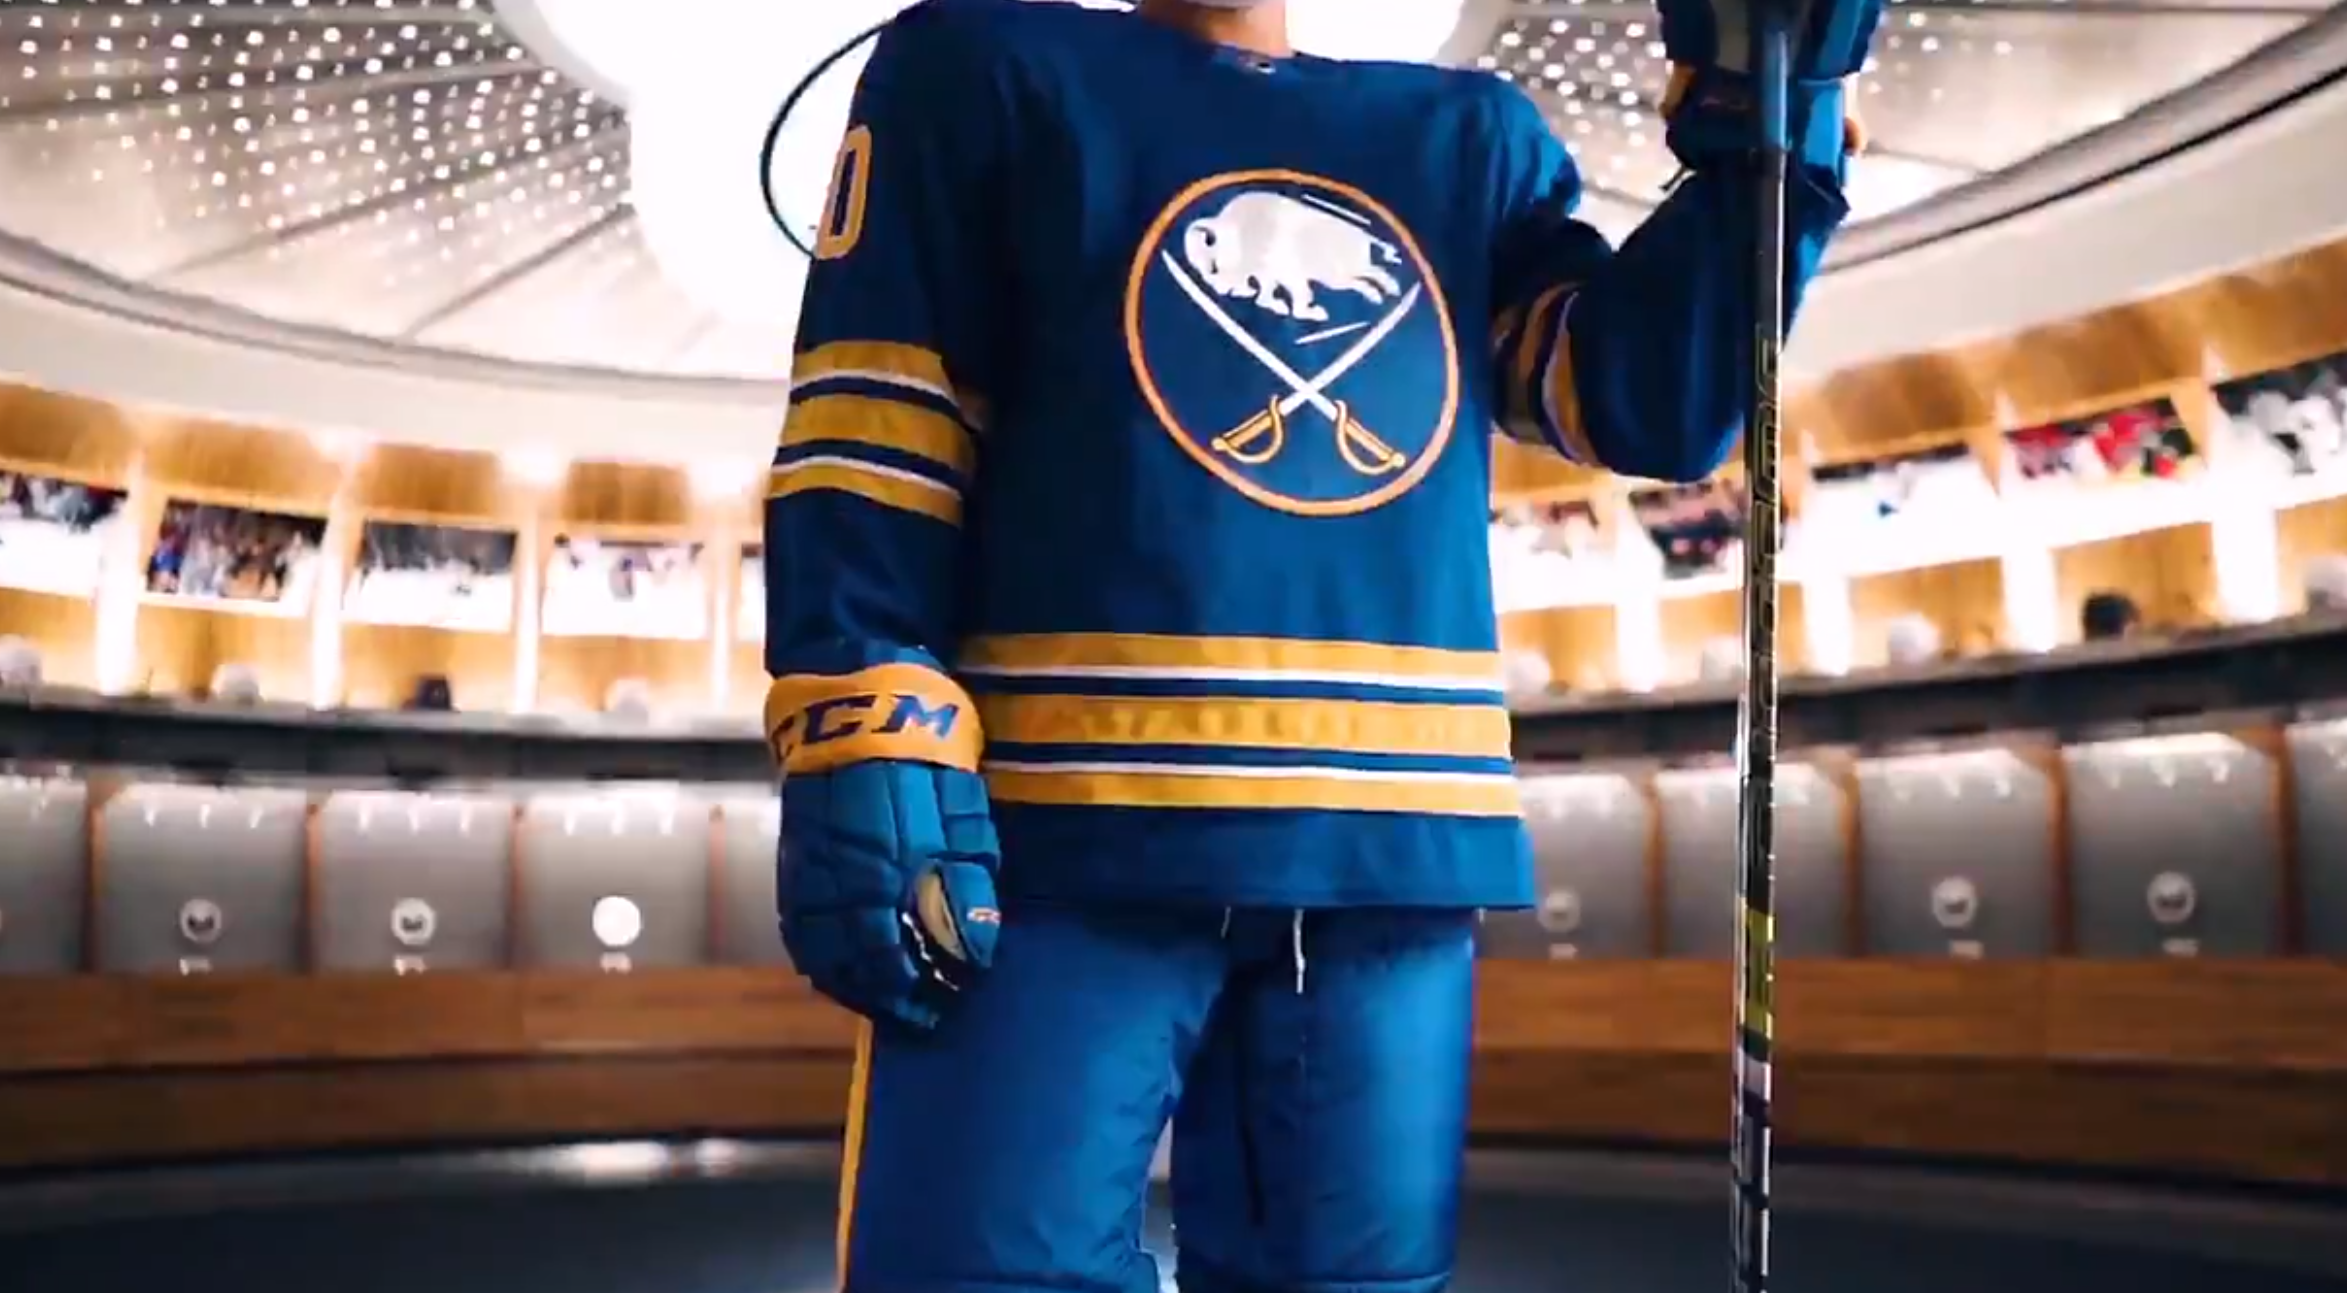 Return to royal blue: Buffalo Sabres unveil new jerseys